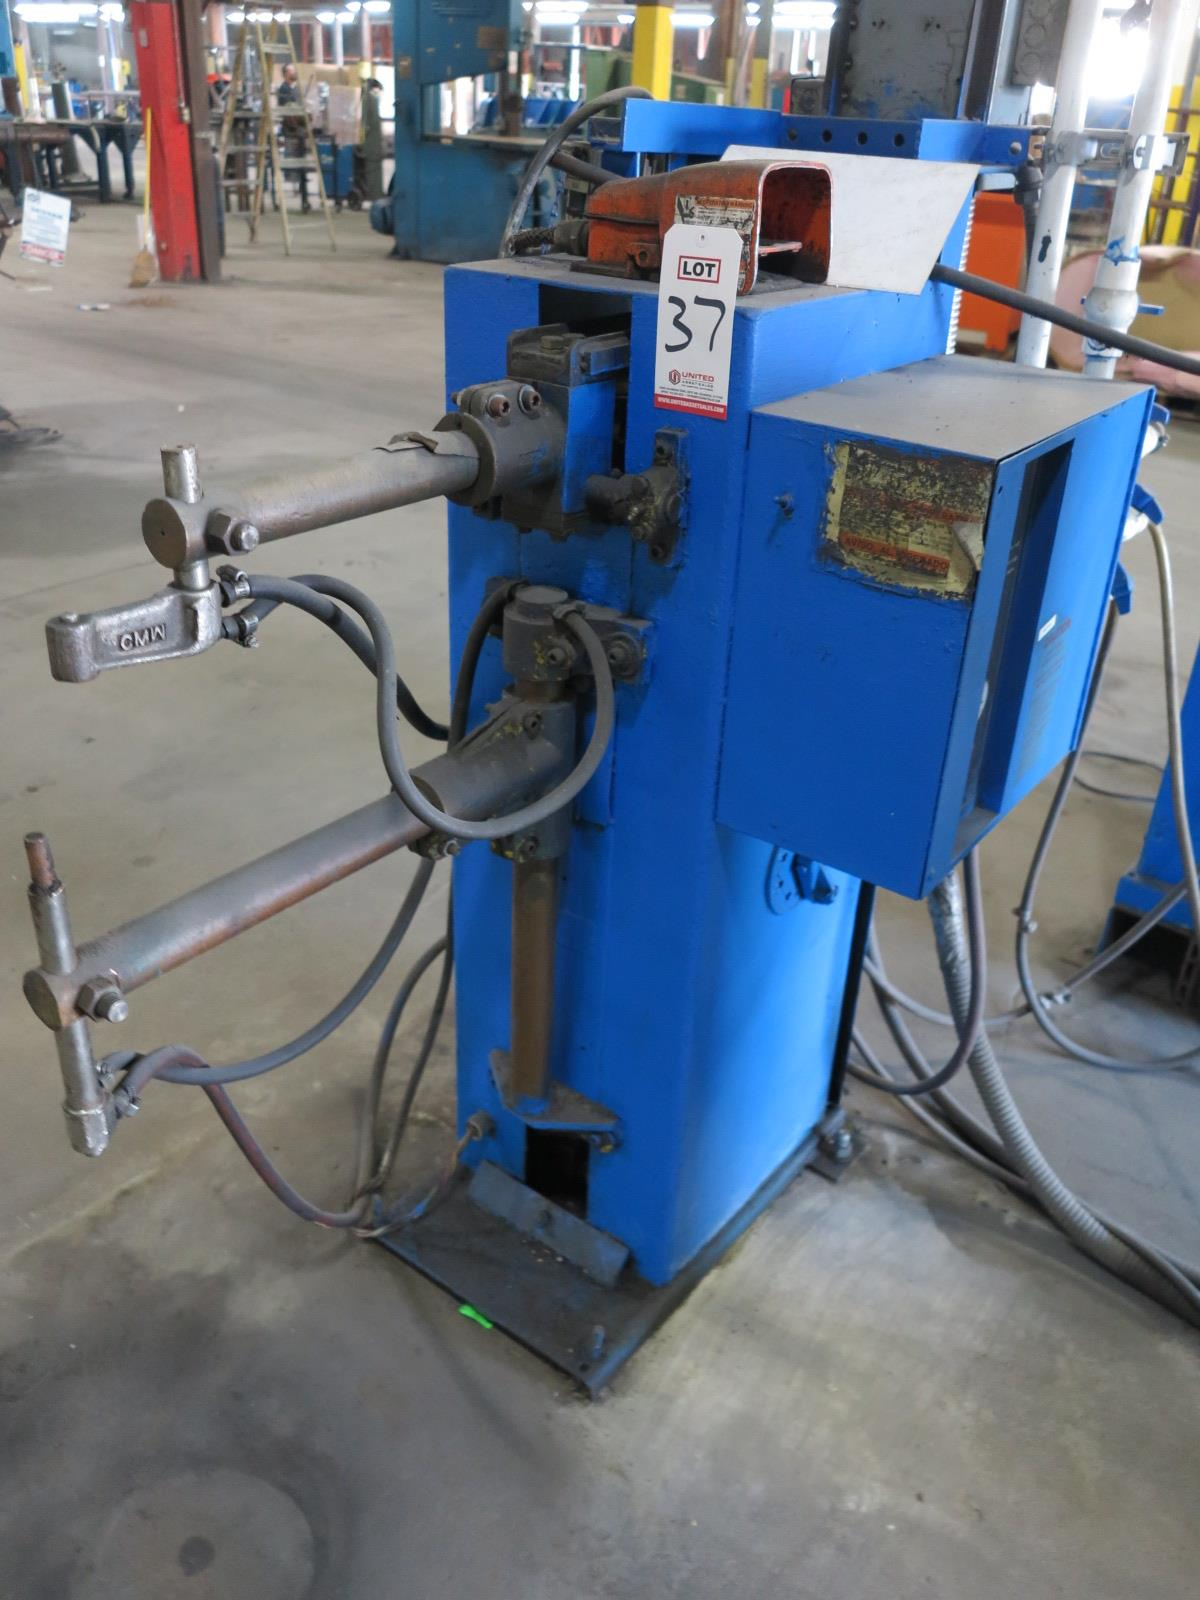 ACME SPOT WELDER, 30 KVA, DATA PLATE MISSING, FOOT PEDAL - Image 2 of 2